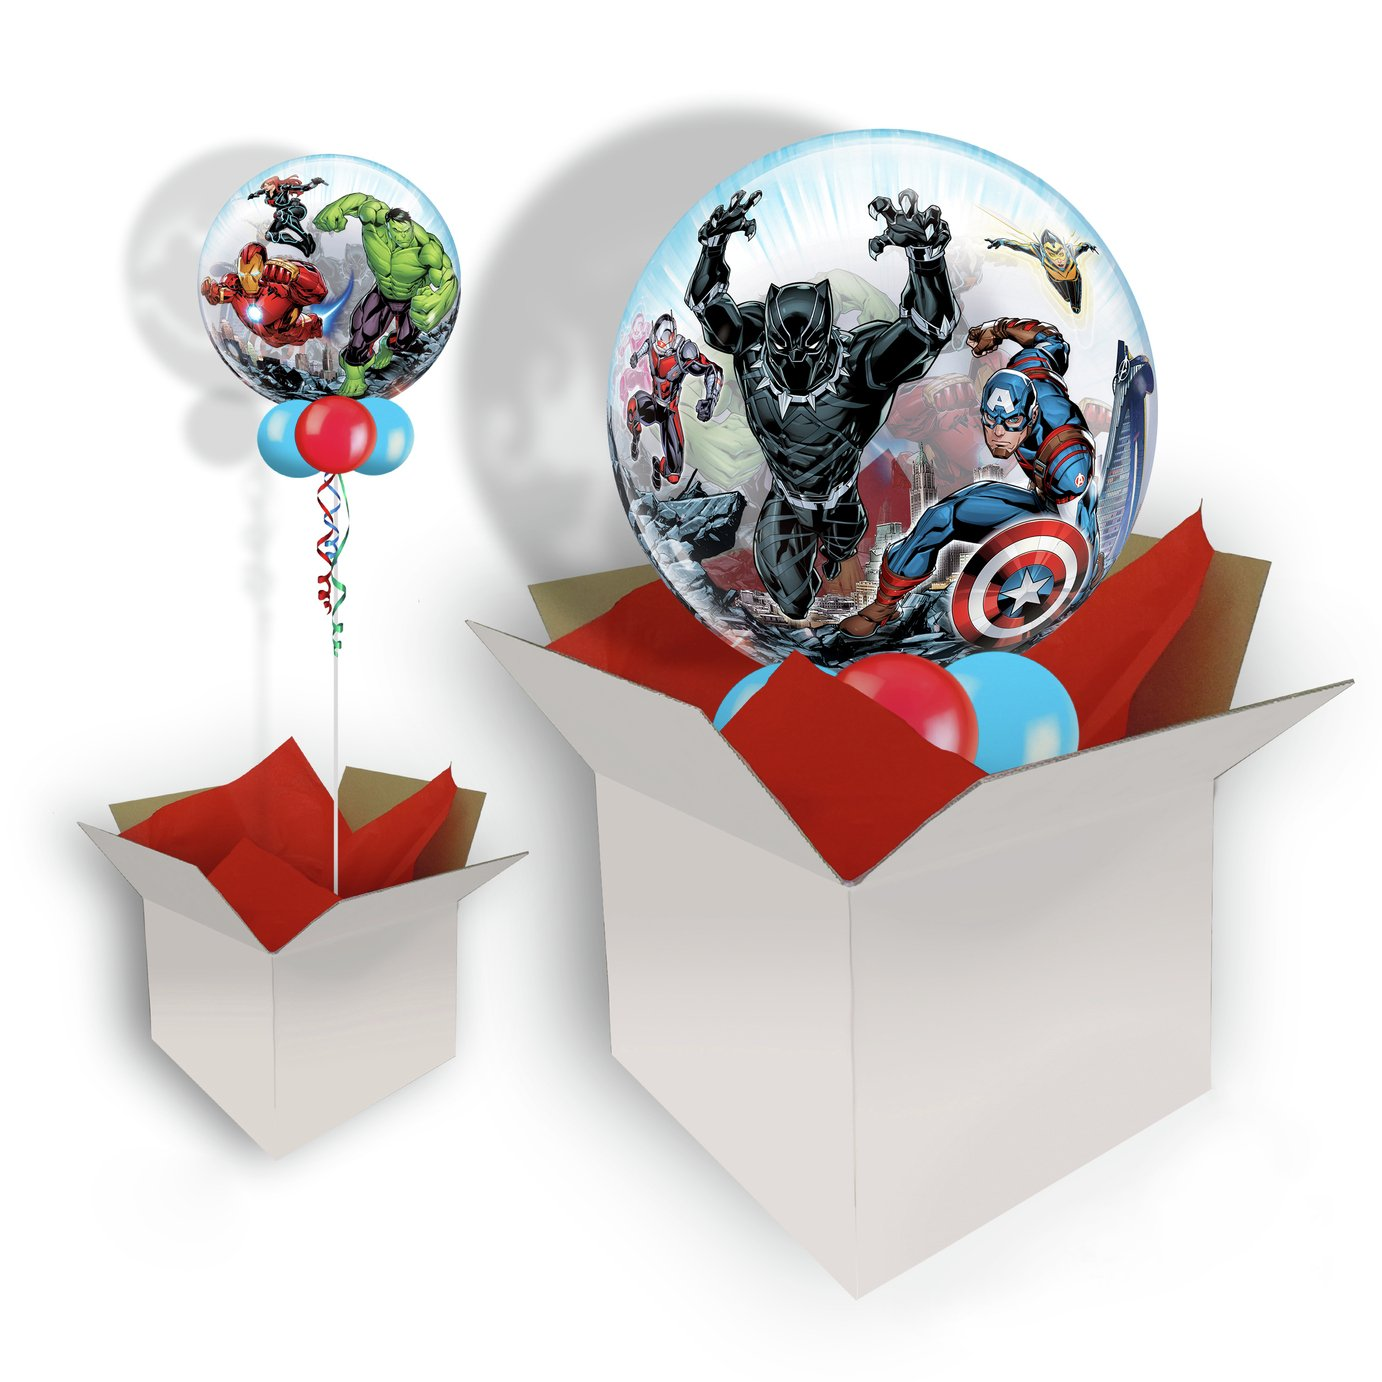 Marvel Avengers Bubble Balloon In A Box